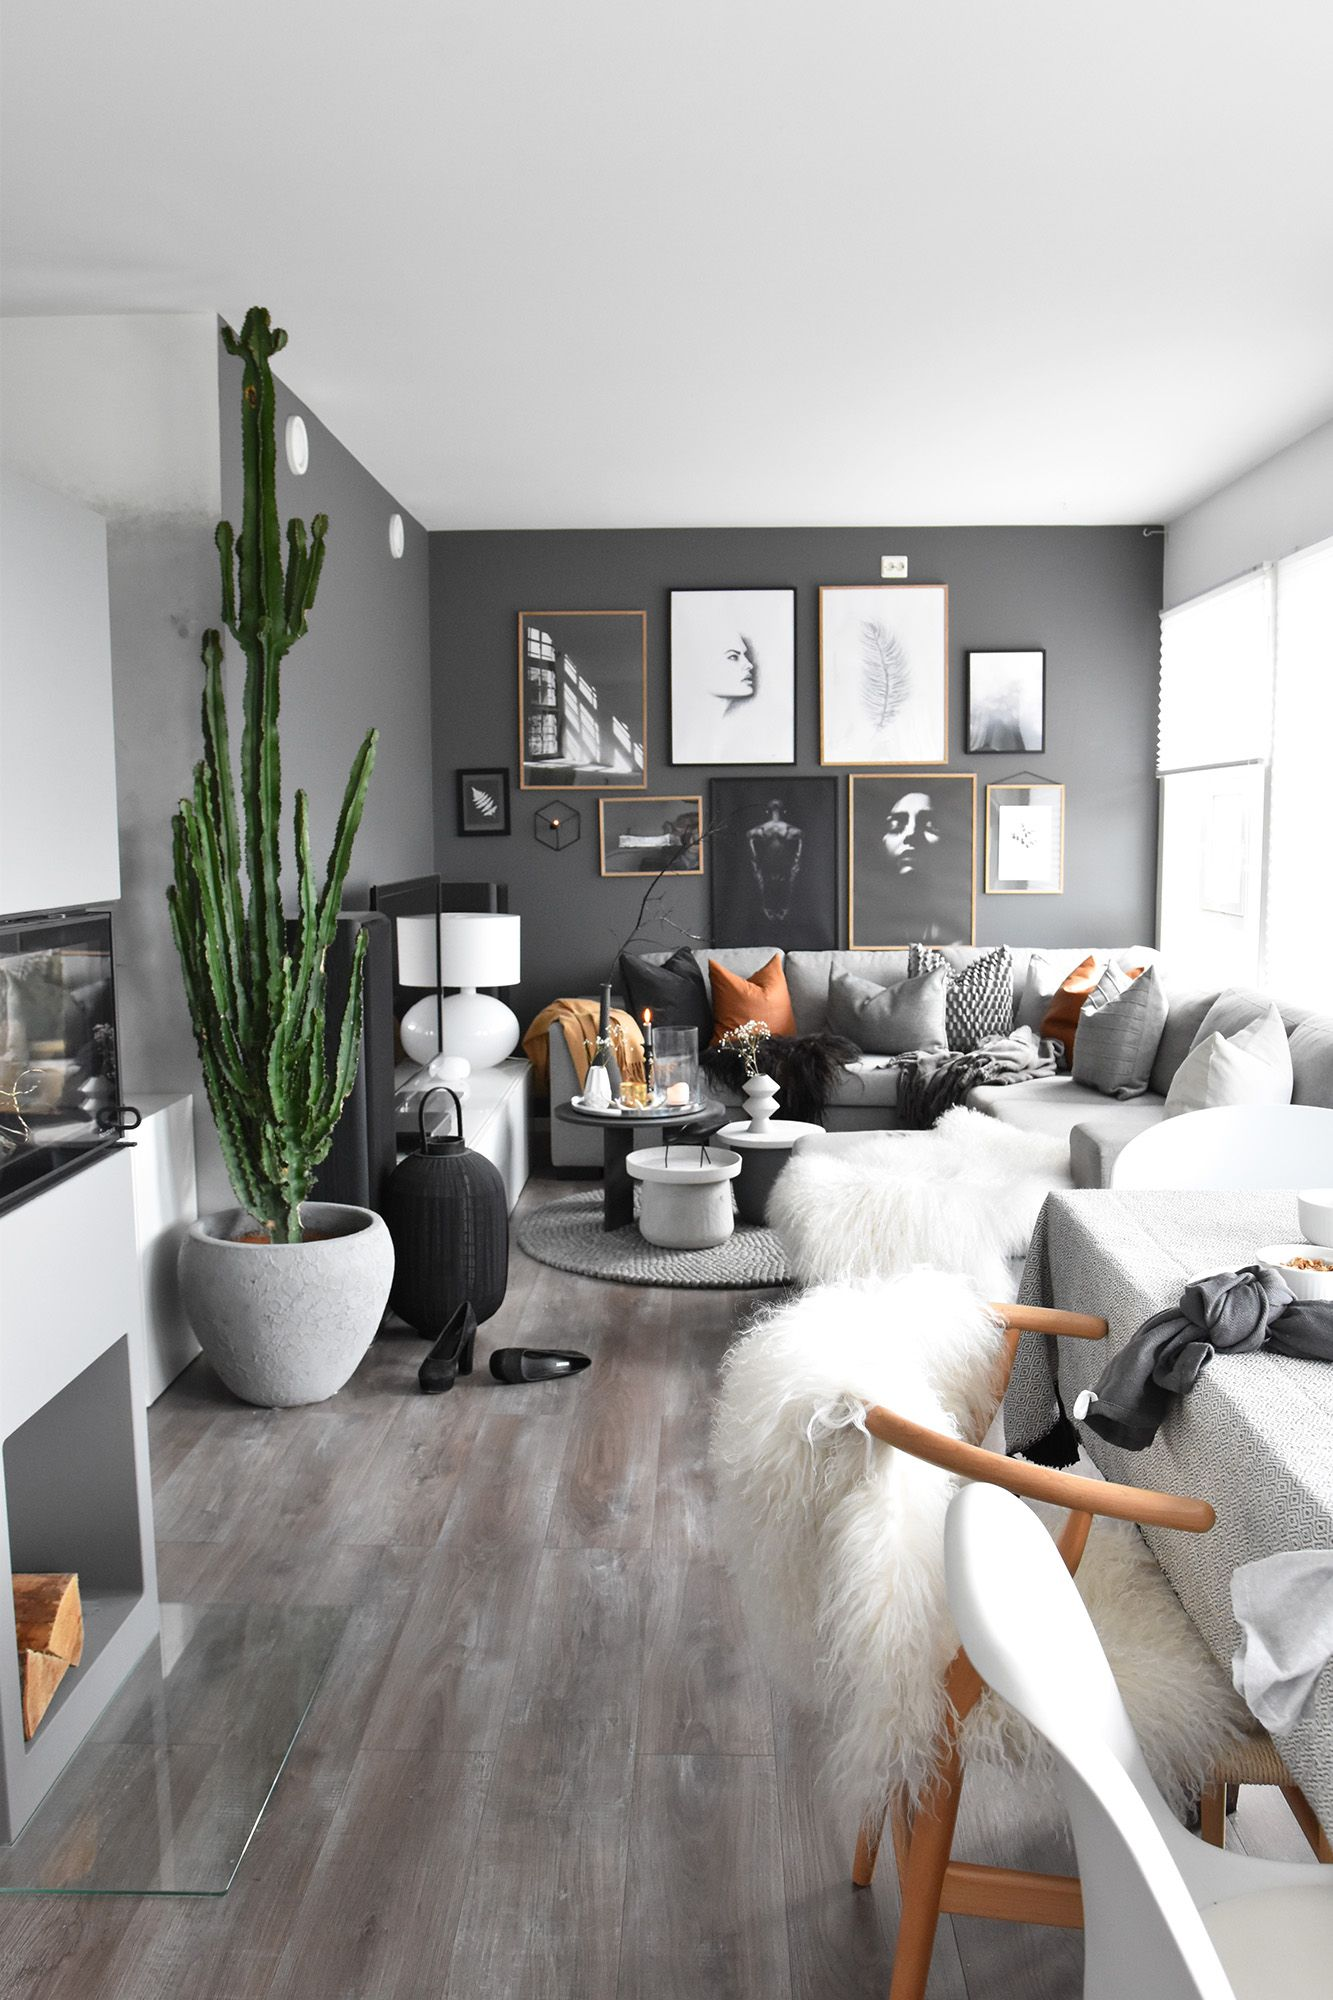 10 Fall Trends The Seasons Latest Ideas Living room ideas